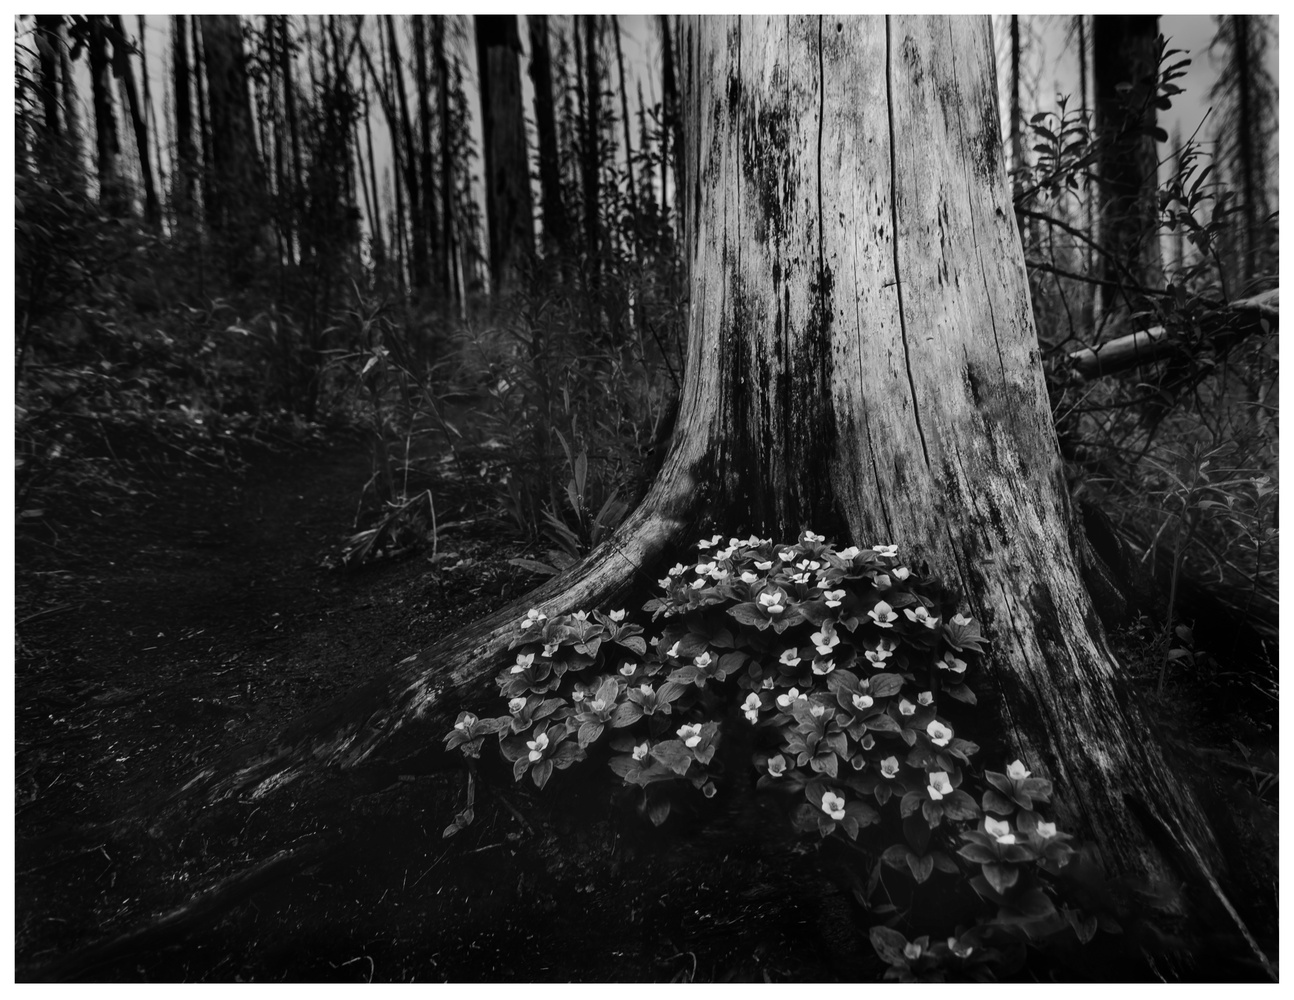 Shade of The Tree by Matthew Roberge